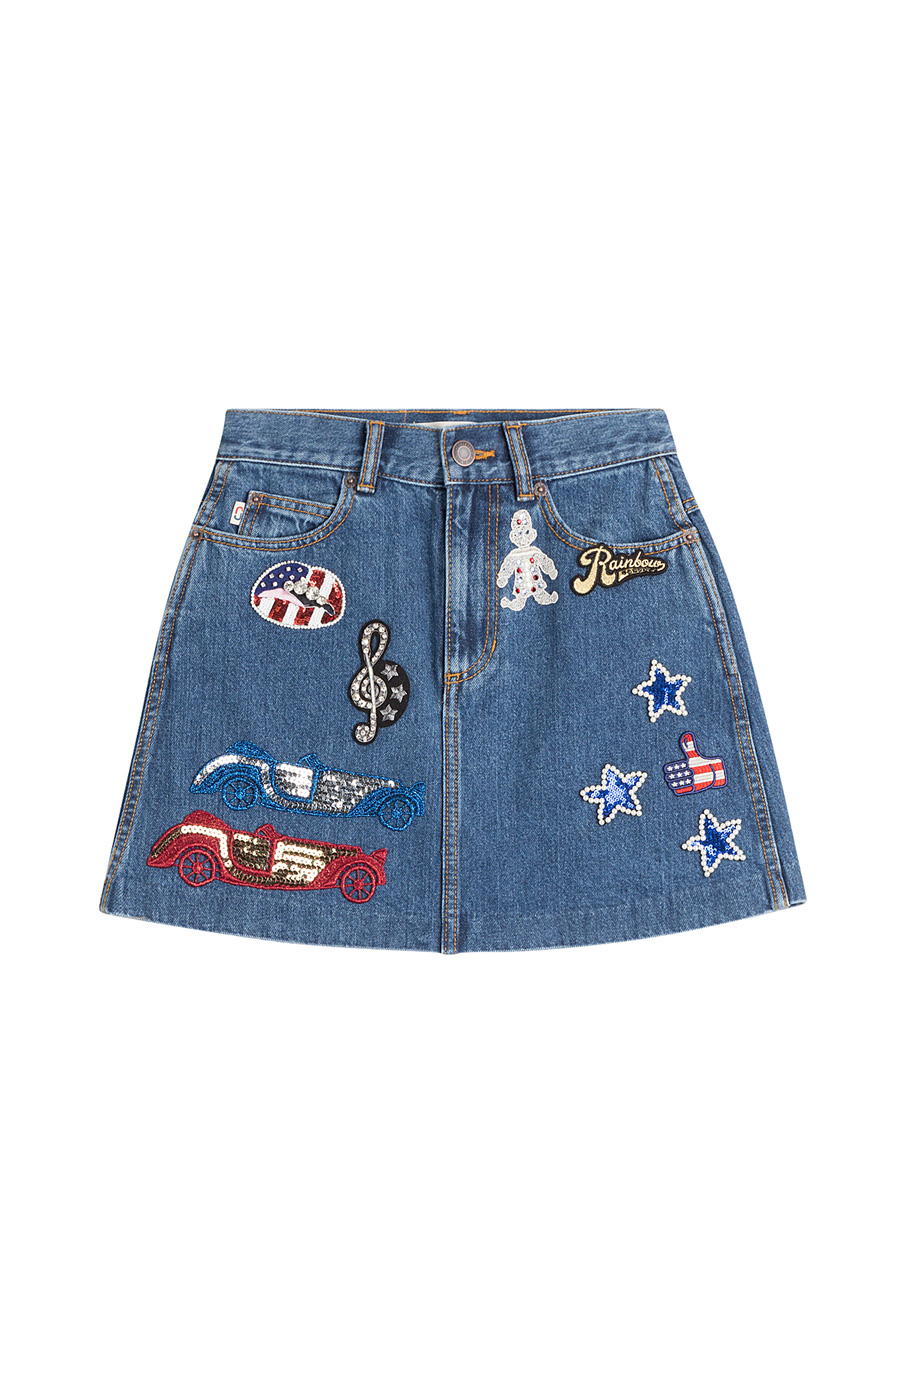 Jacobs - High-Waisted Denim Skirt with Embellished Patches